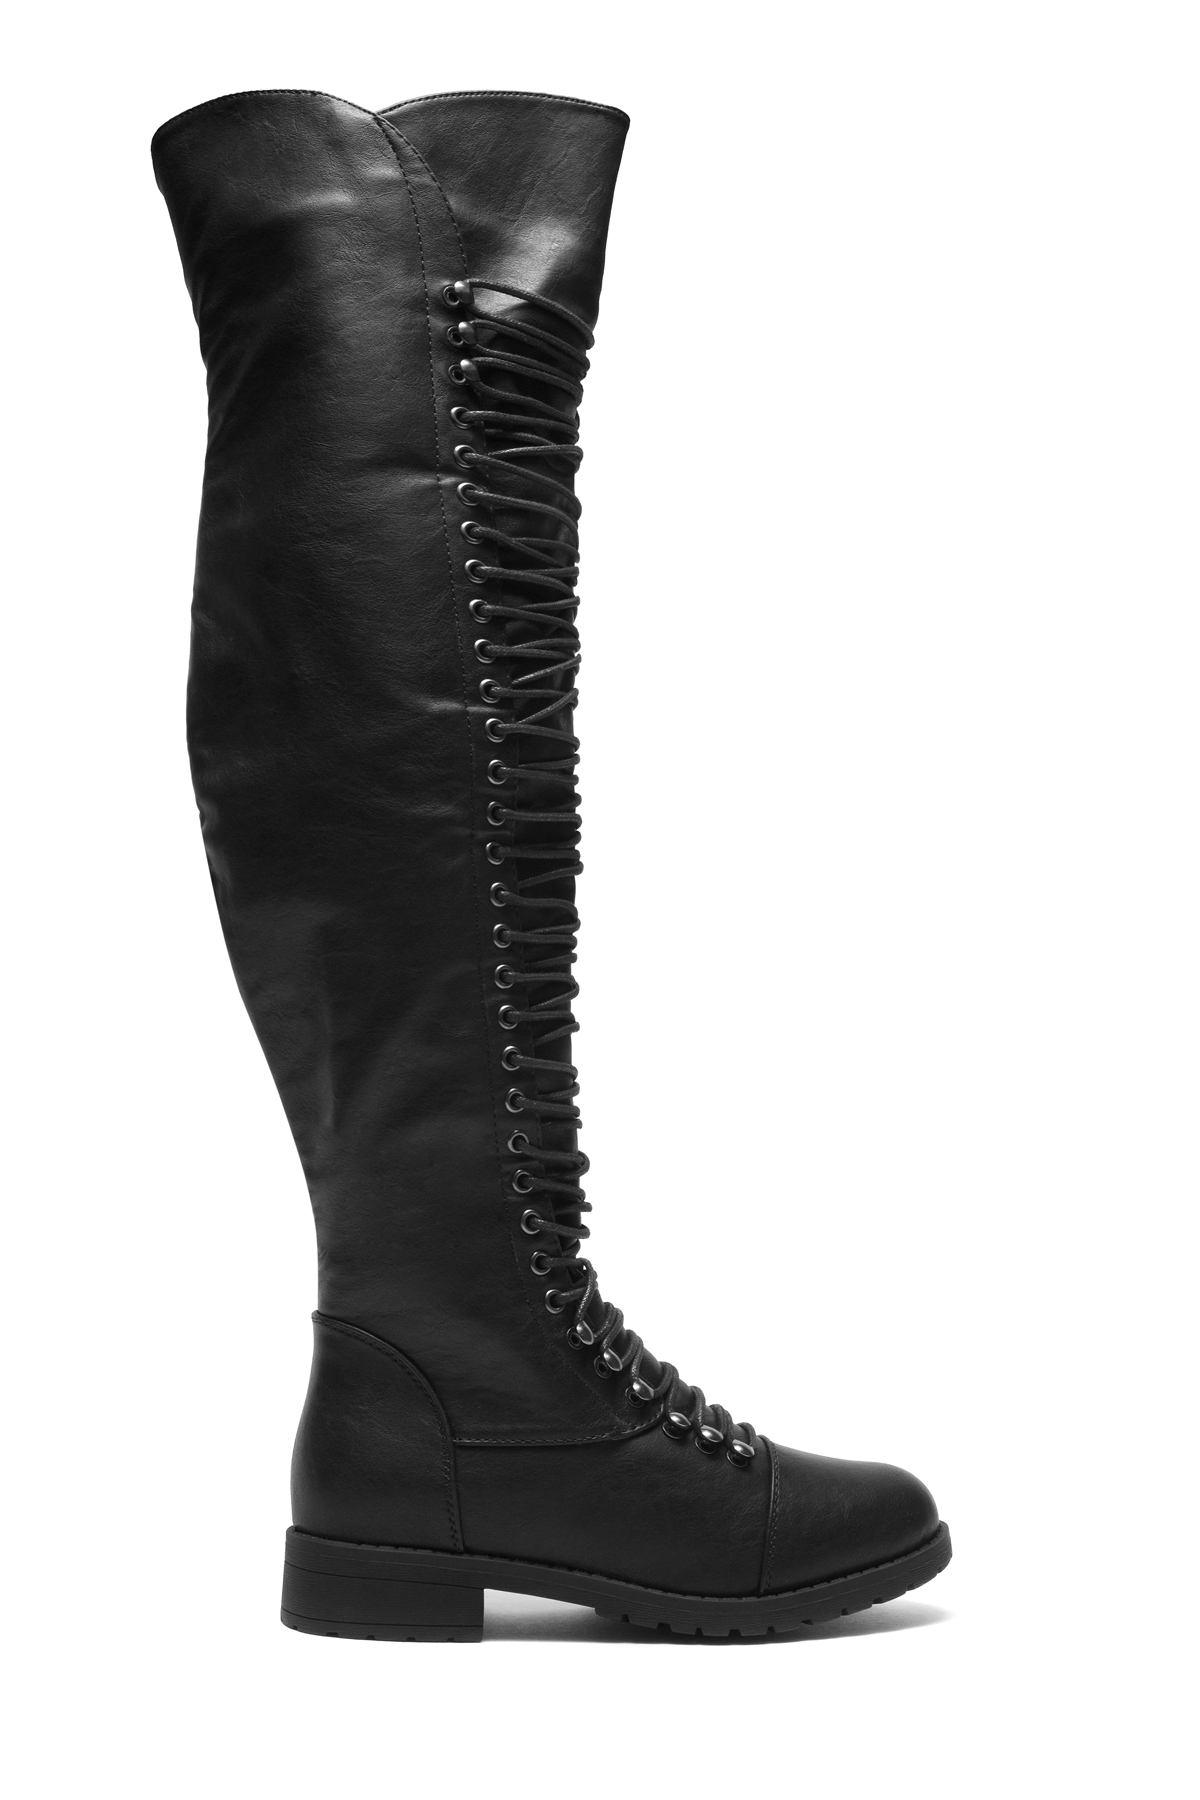 Black Kristrrina Military Lace Up Thigh High Combat Boots